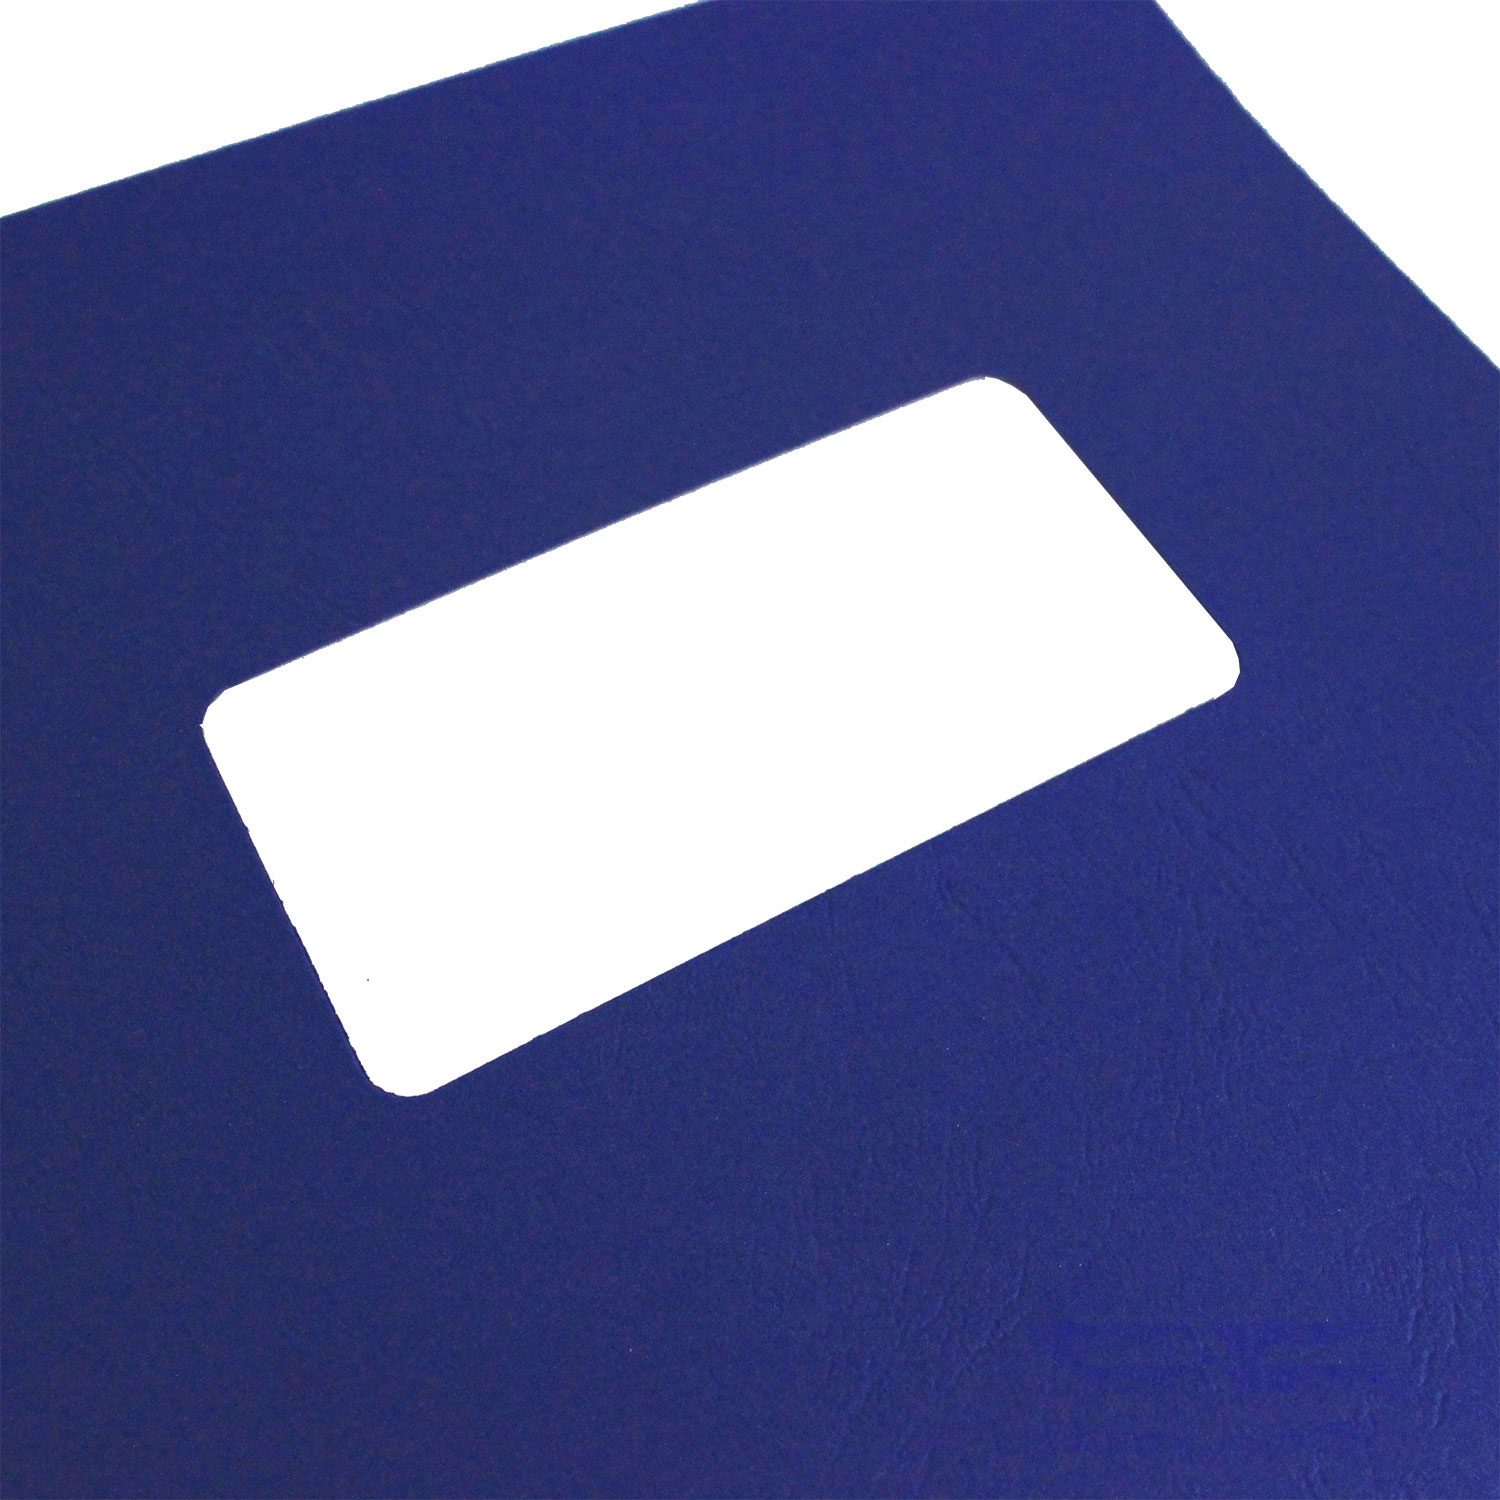 A4 Blue Leathergrain Binding Covers With Window (500)